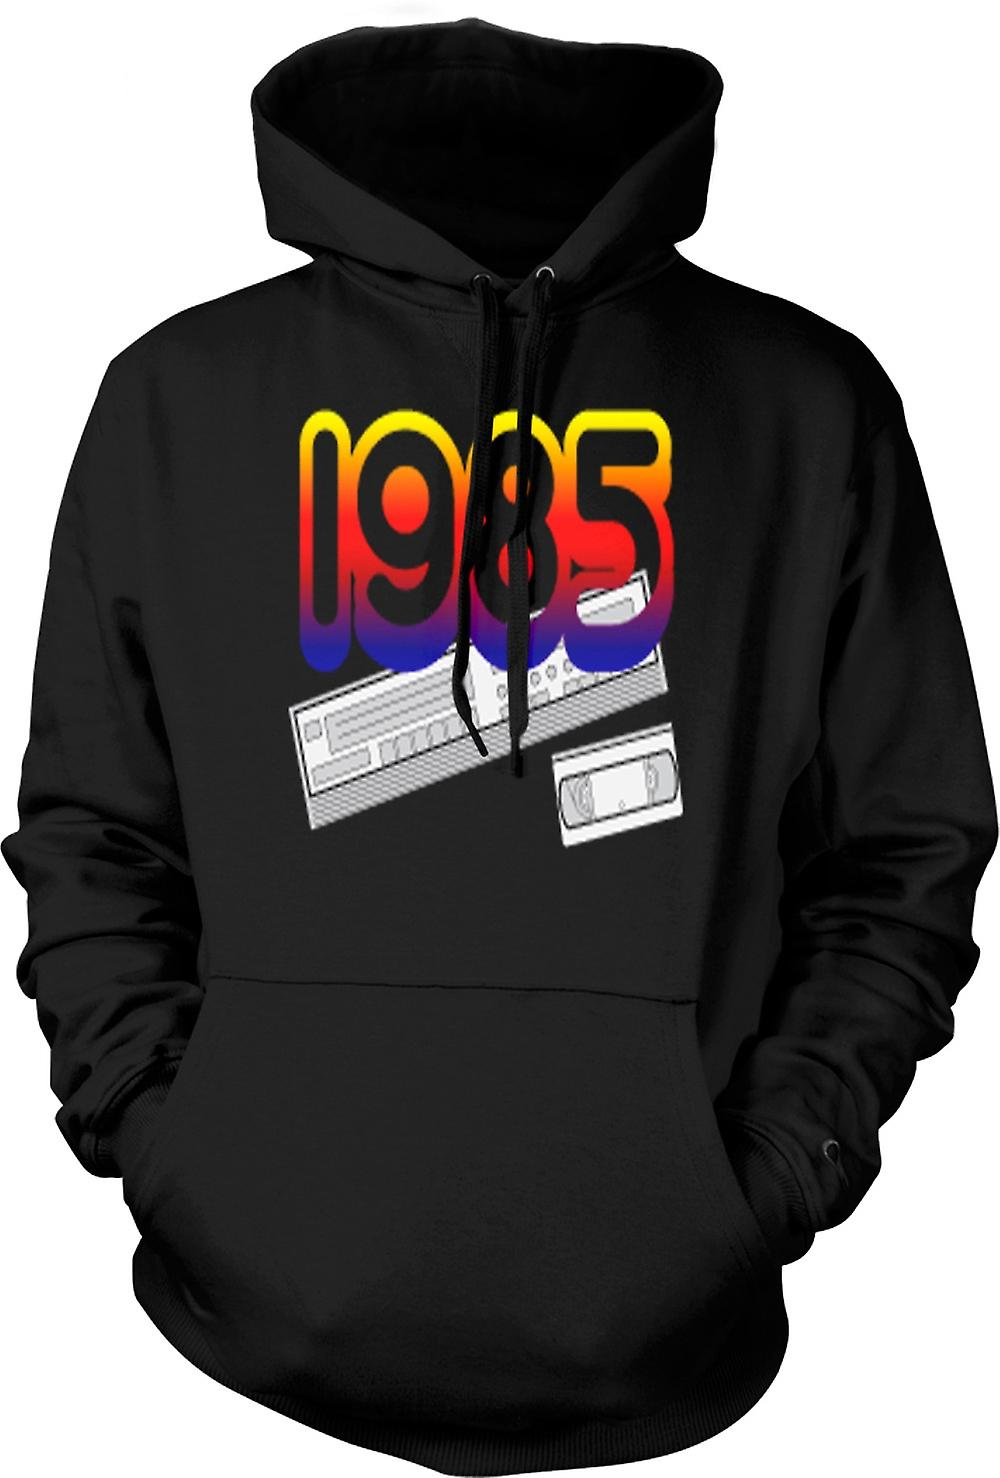 Mens Hoodie - 1985 Video Recorder VCR